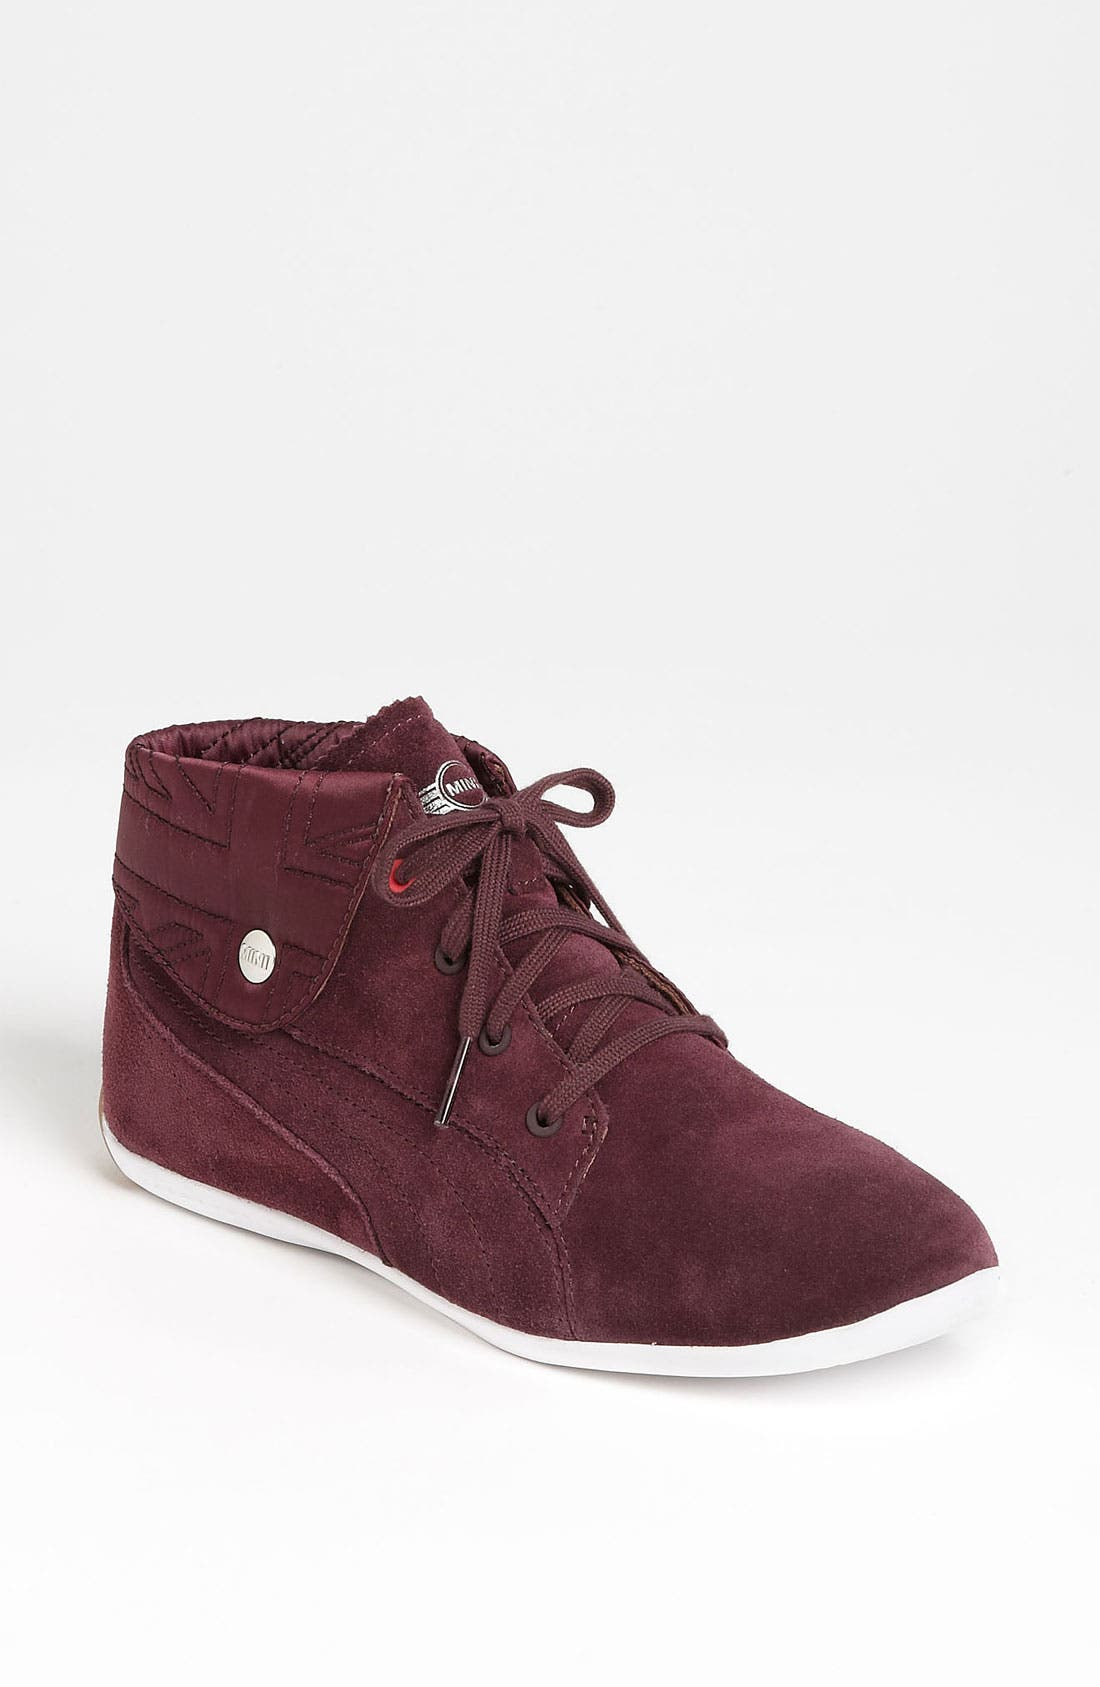 Alternate Image 1 Selected - PUMA 'Buckminster - MINI' Sneaker (Women)